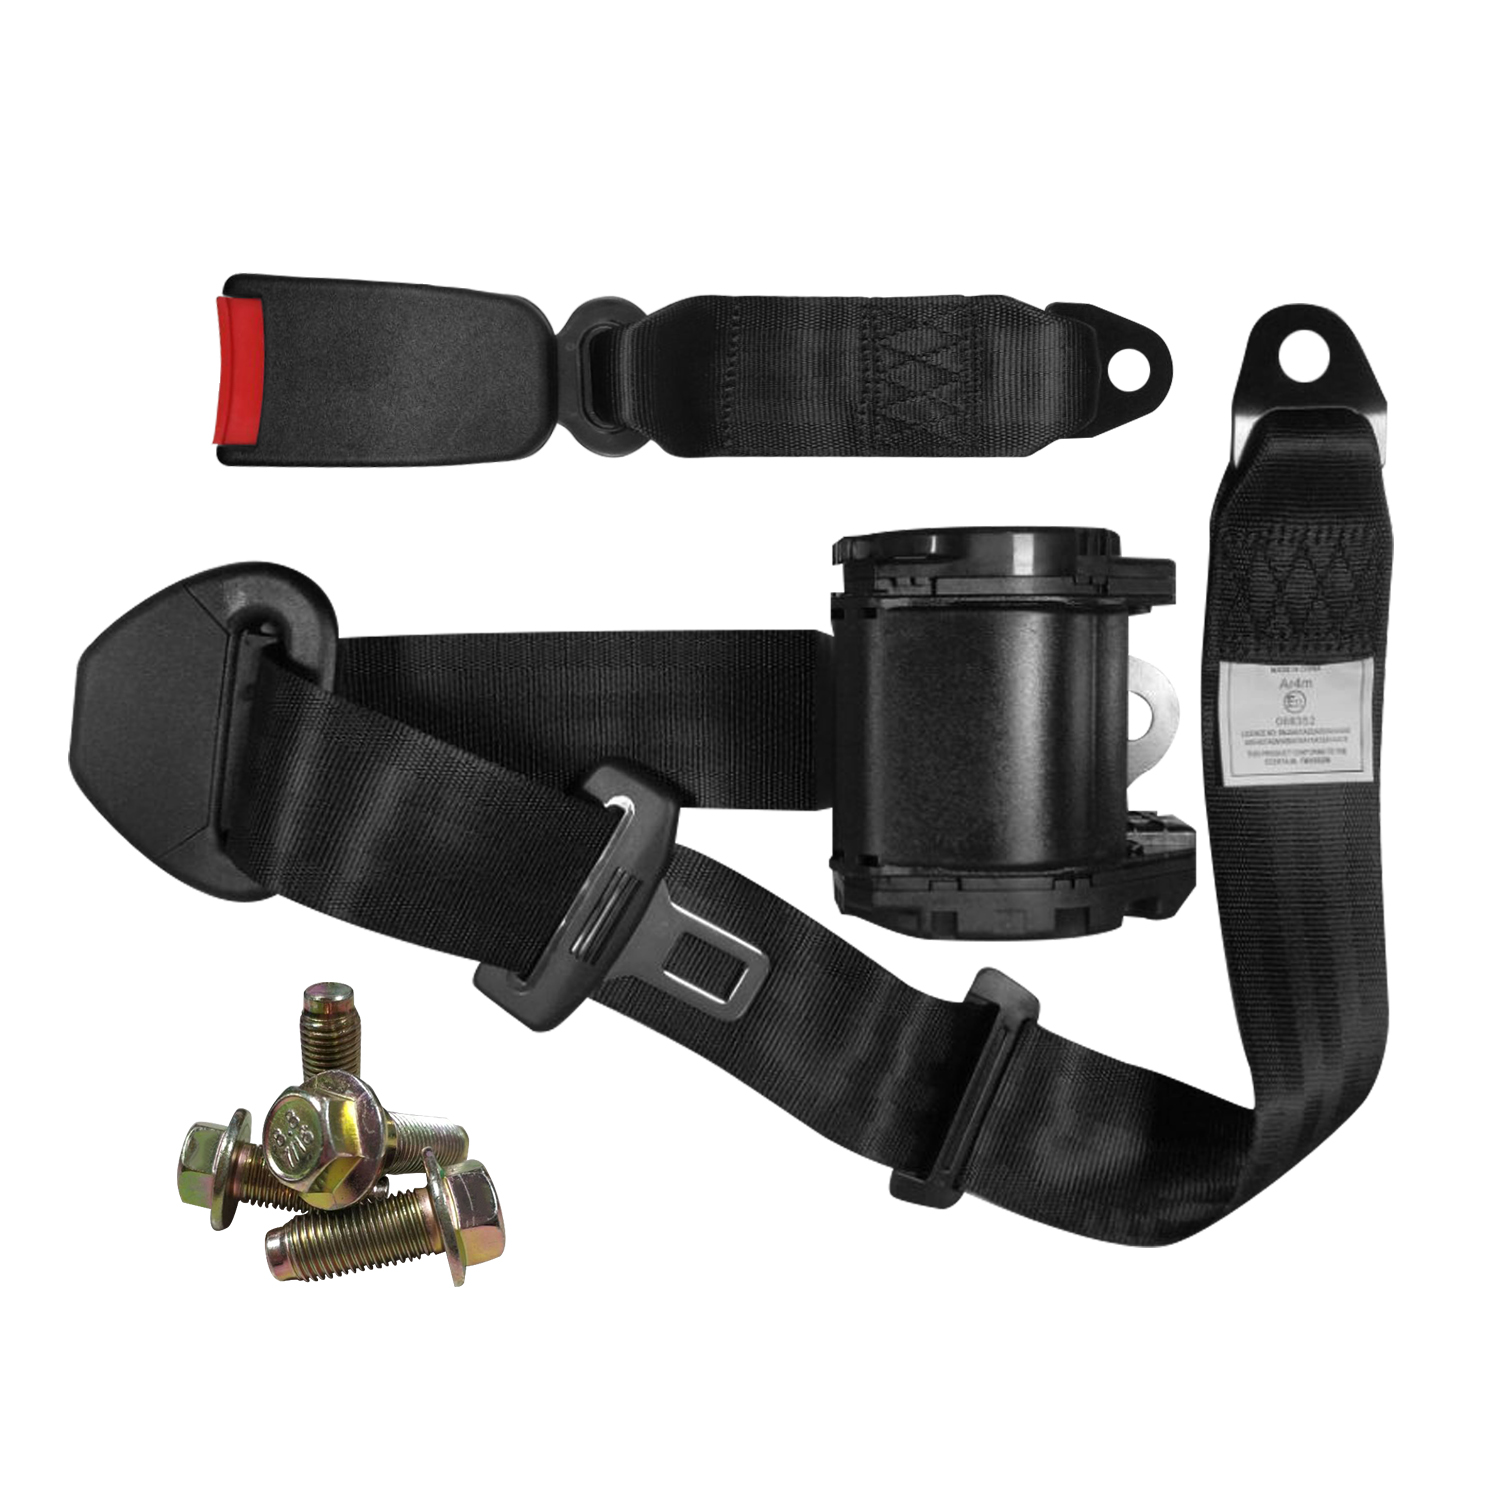 Safety Belt Car Seat Belt Bus Safety Belt Buy A Safety Seat Belt Manufacture In China Auto Parts City Xiamen High Quality Products And Fast Delivery Service 10